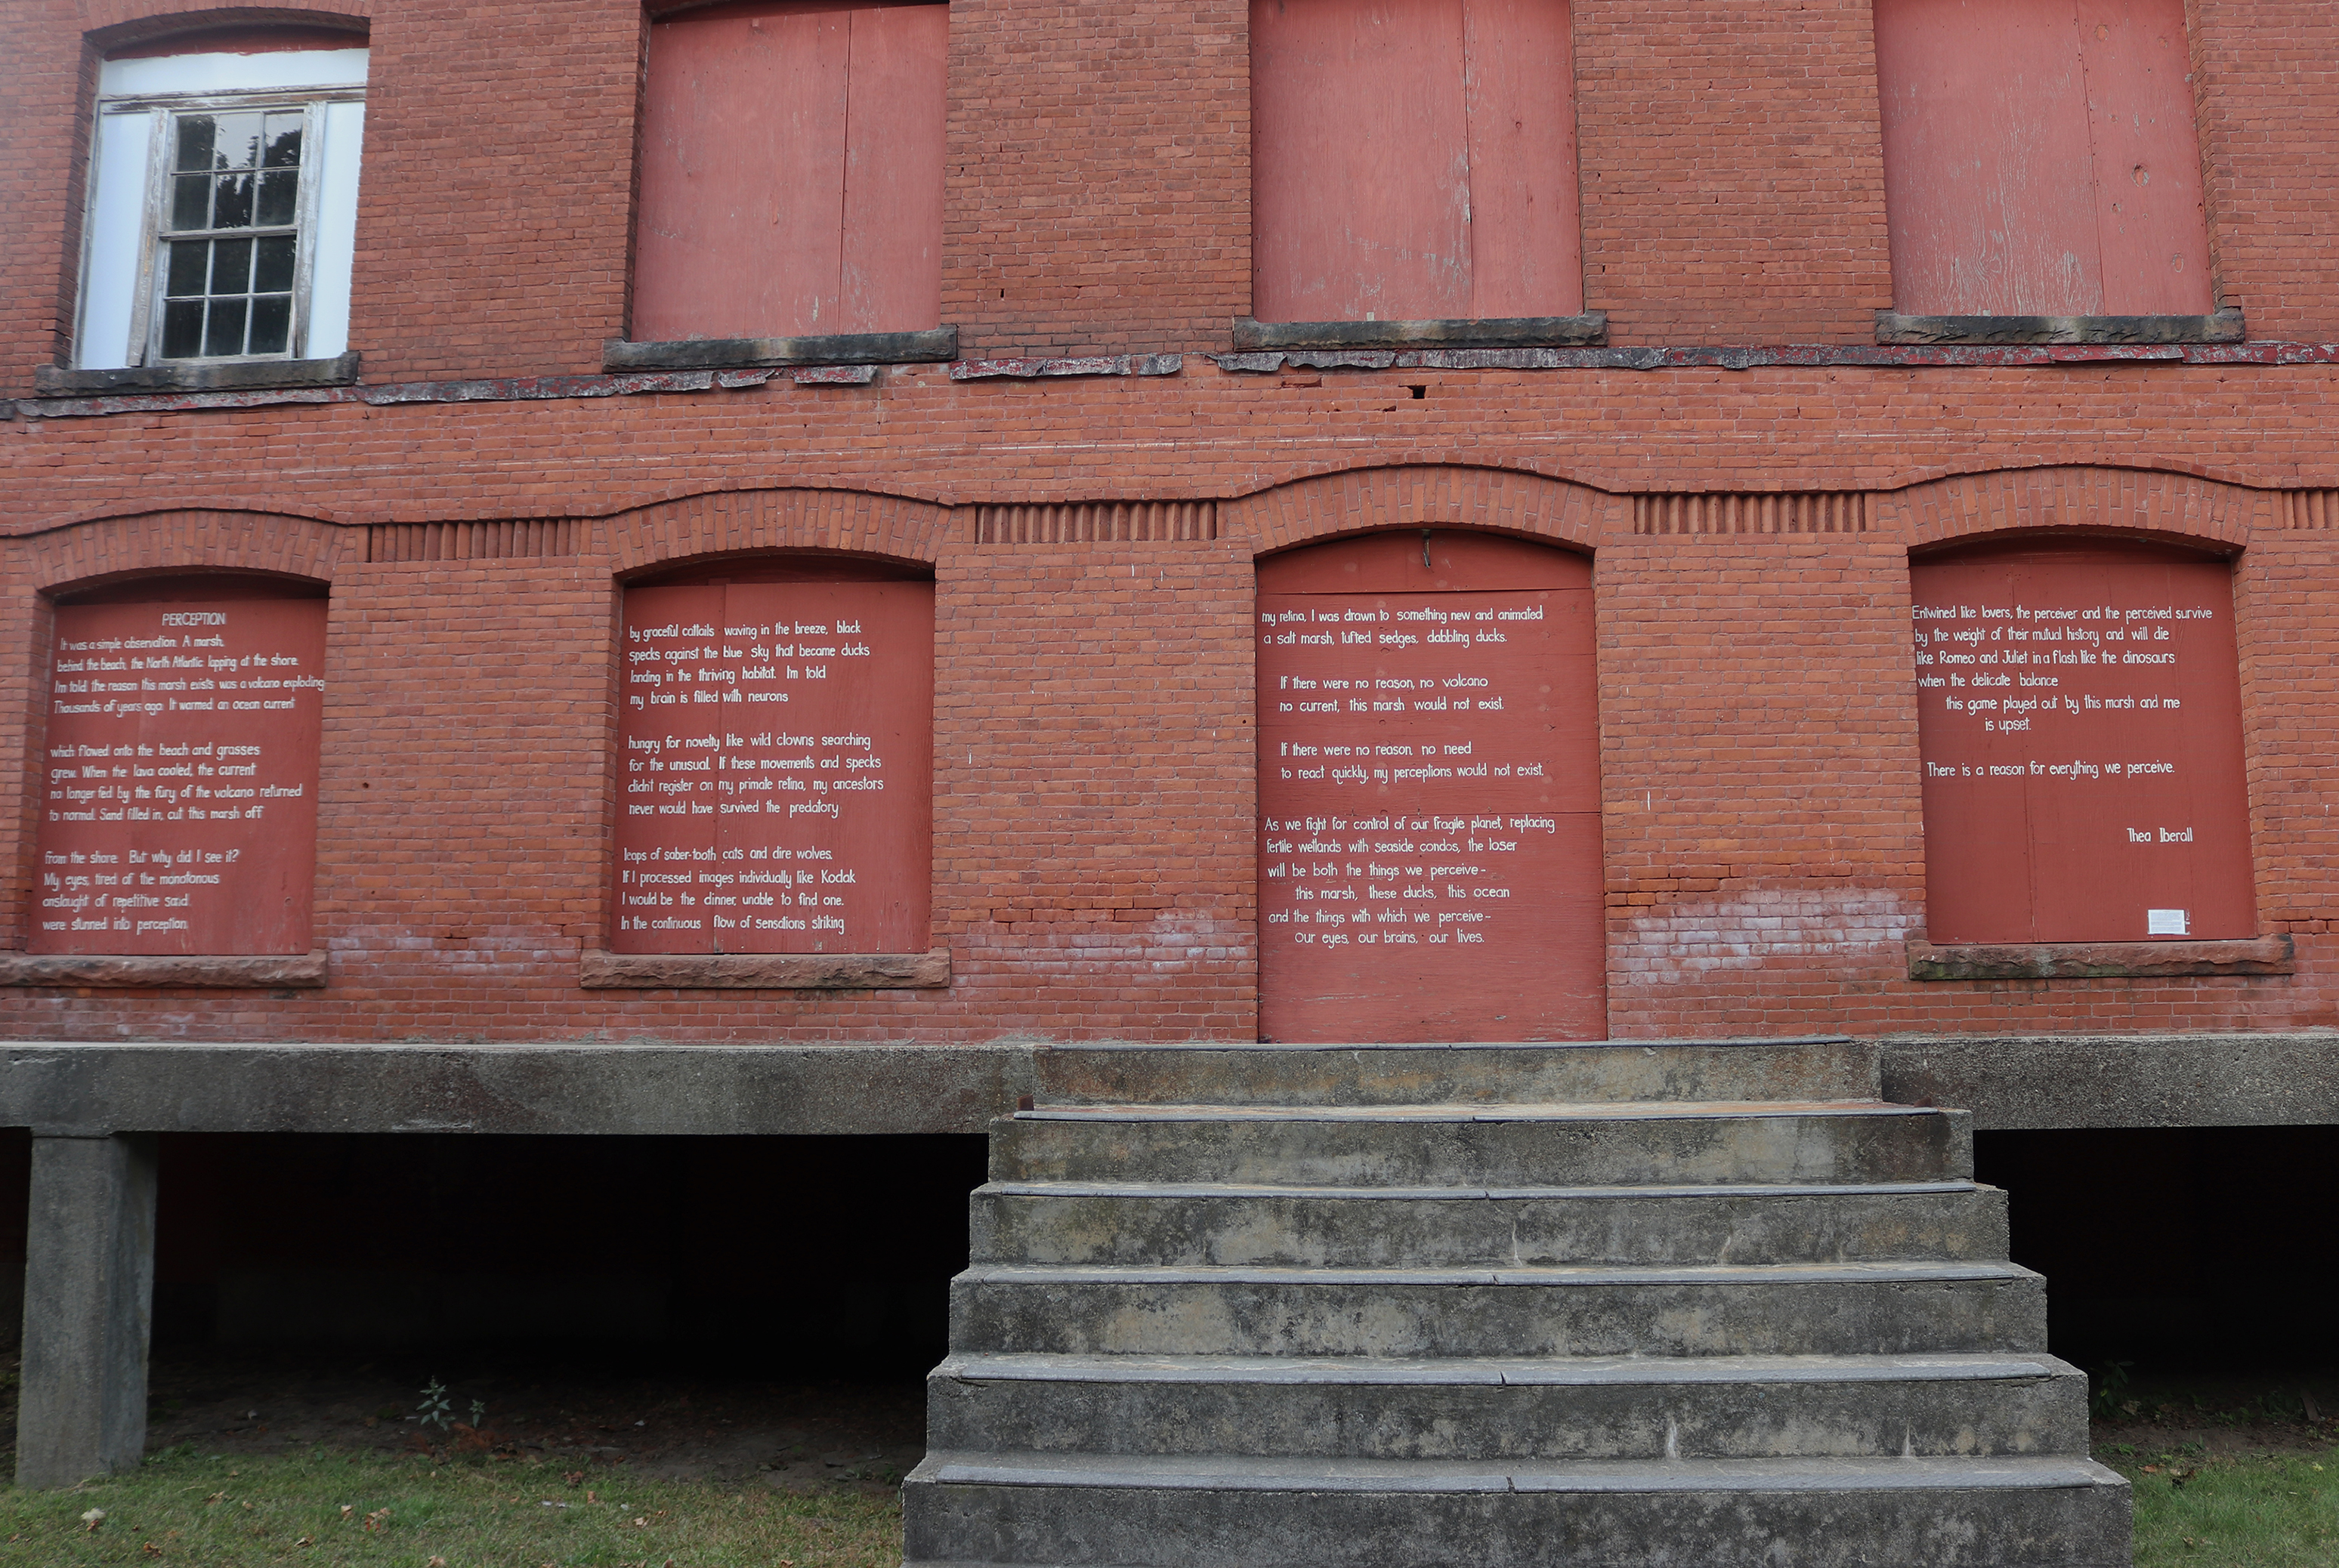 Poems on building